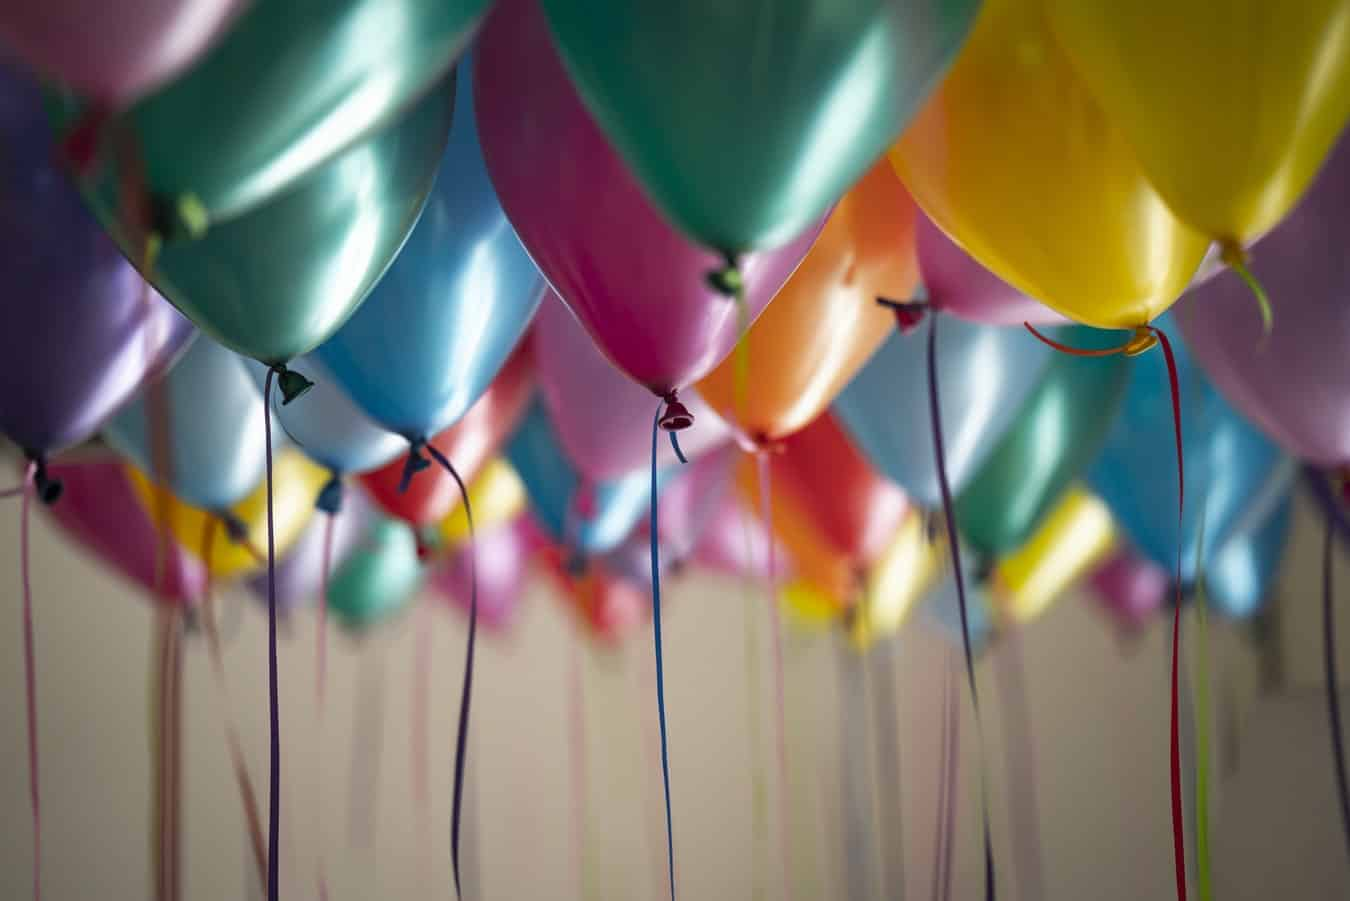 A range of different coloured helium balloon on the ceiling